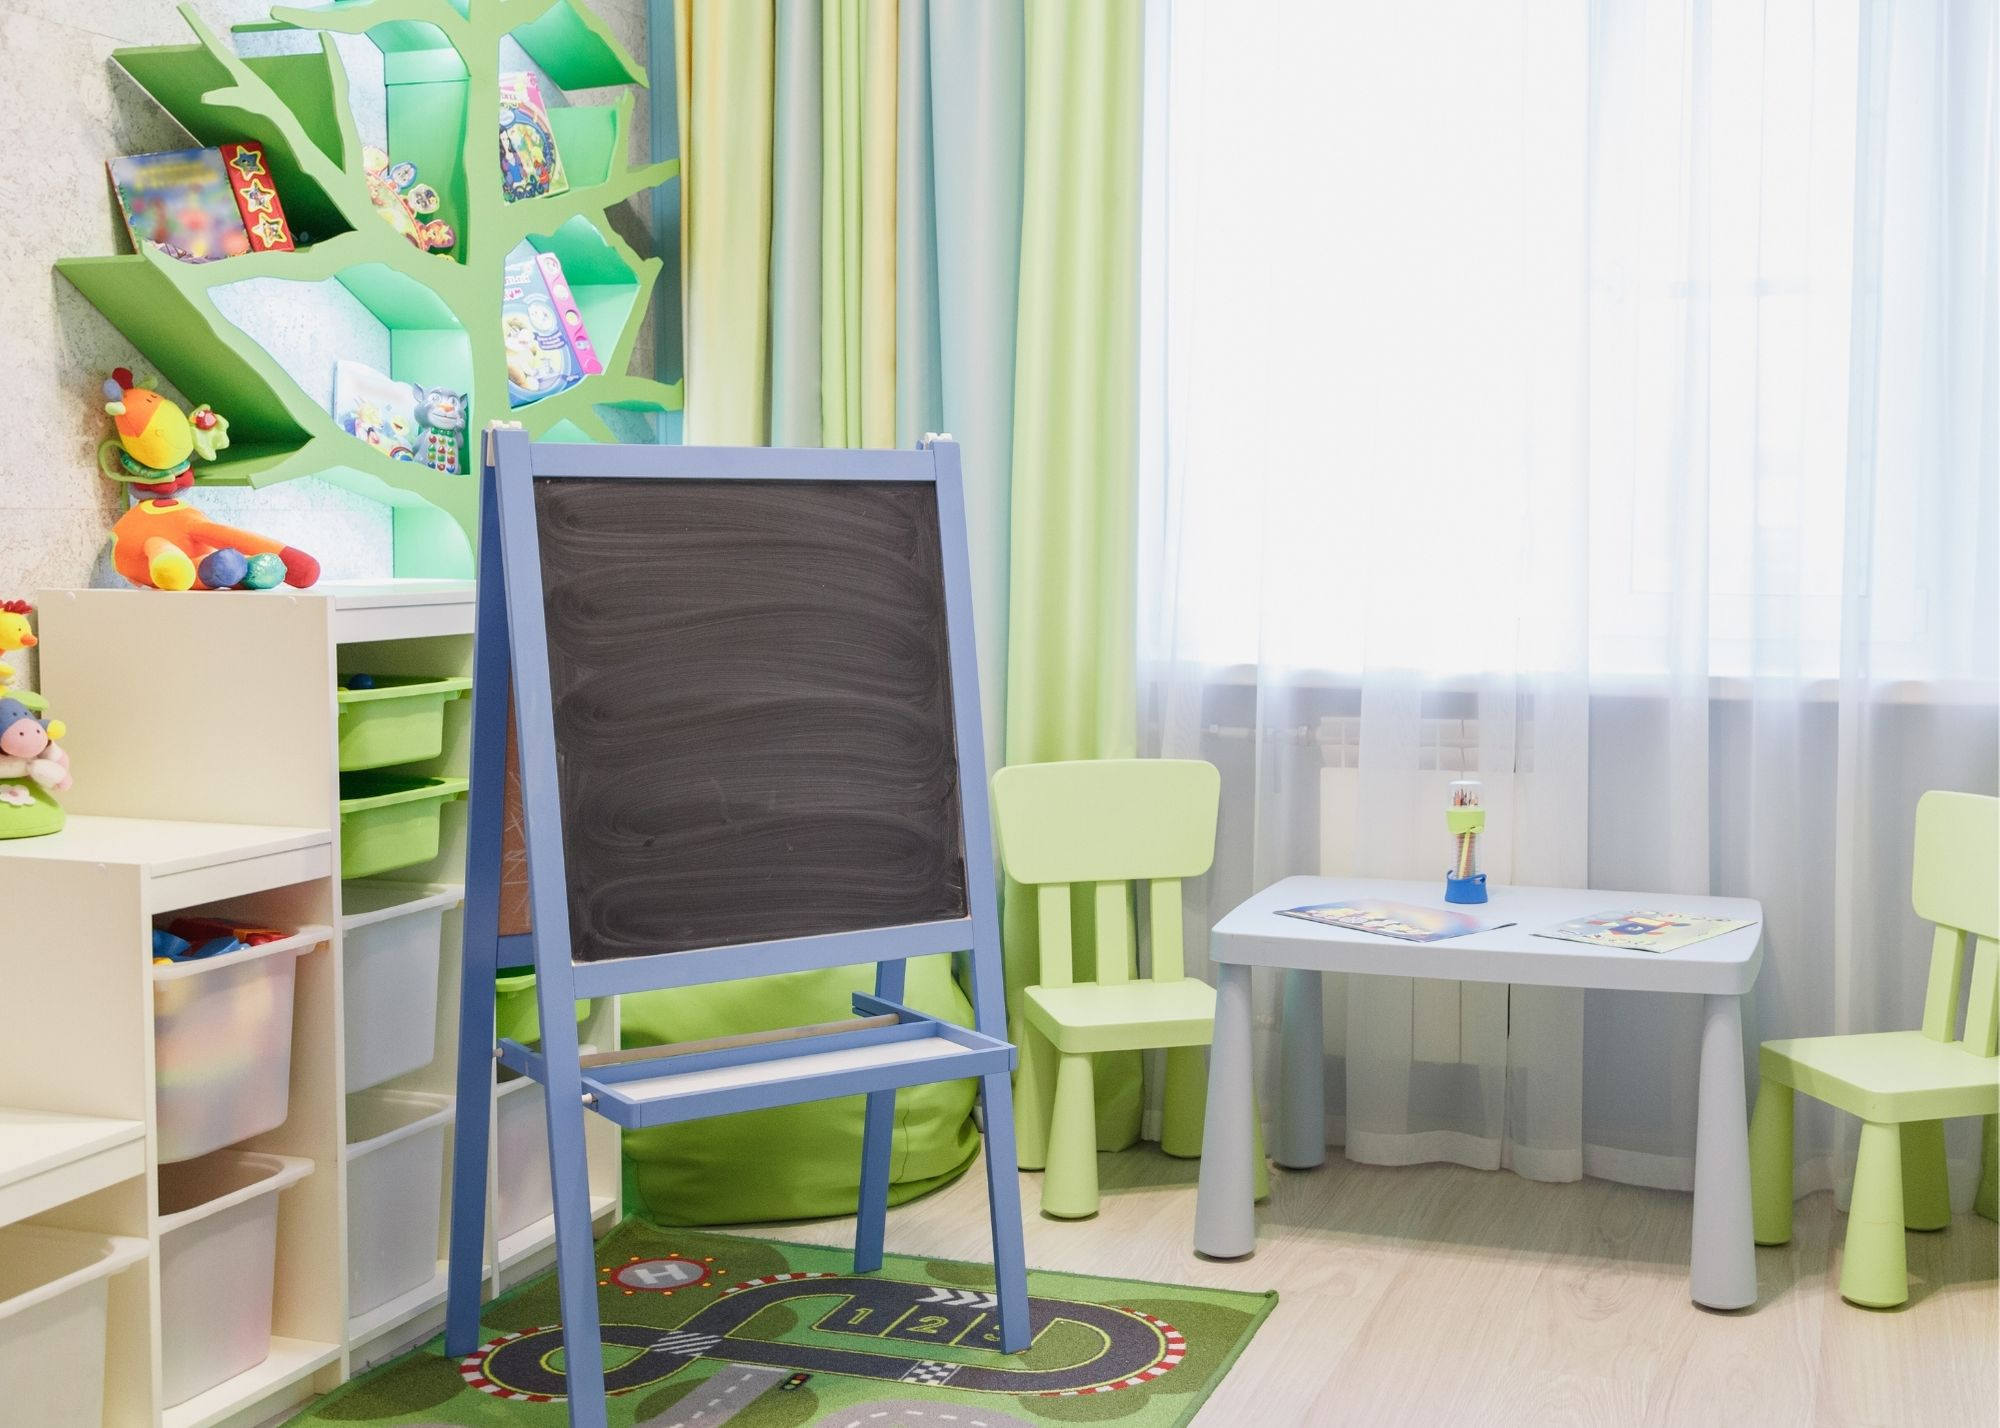 Kids play space with table, easel, and toys.